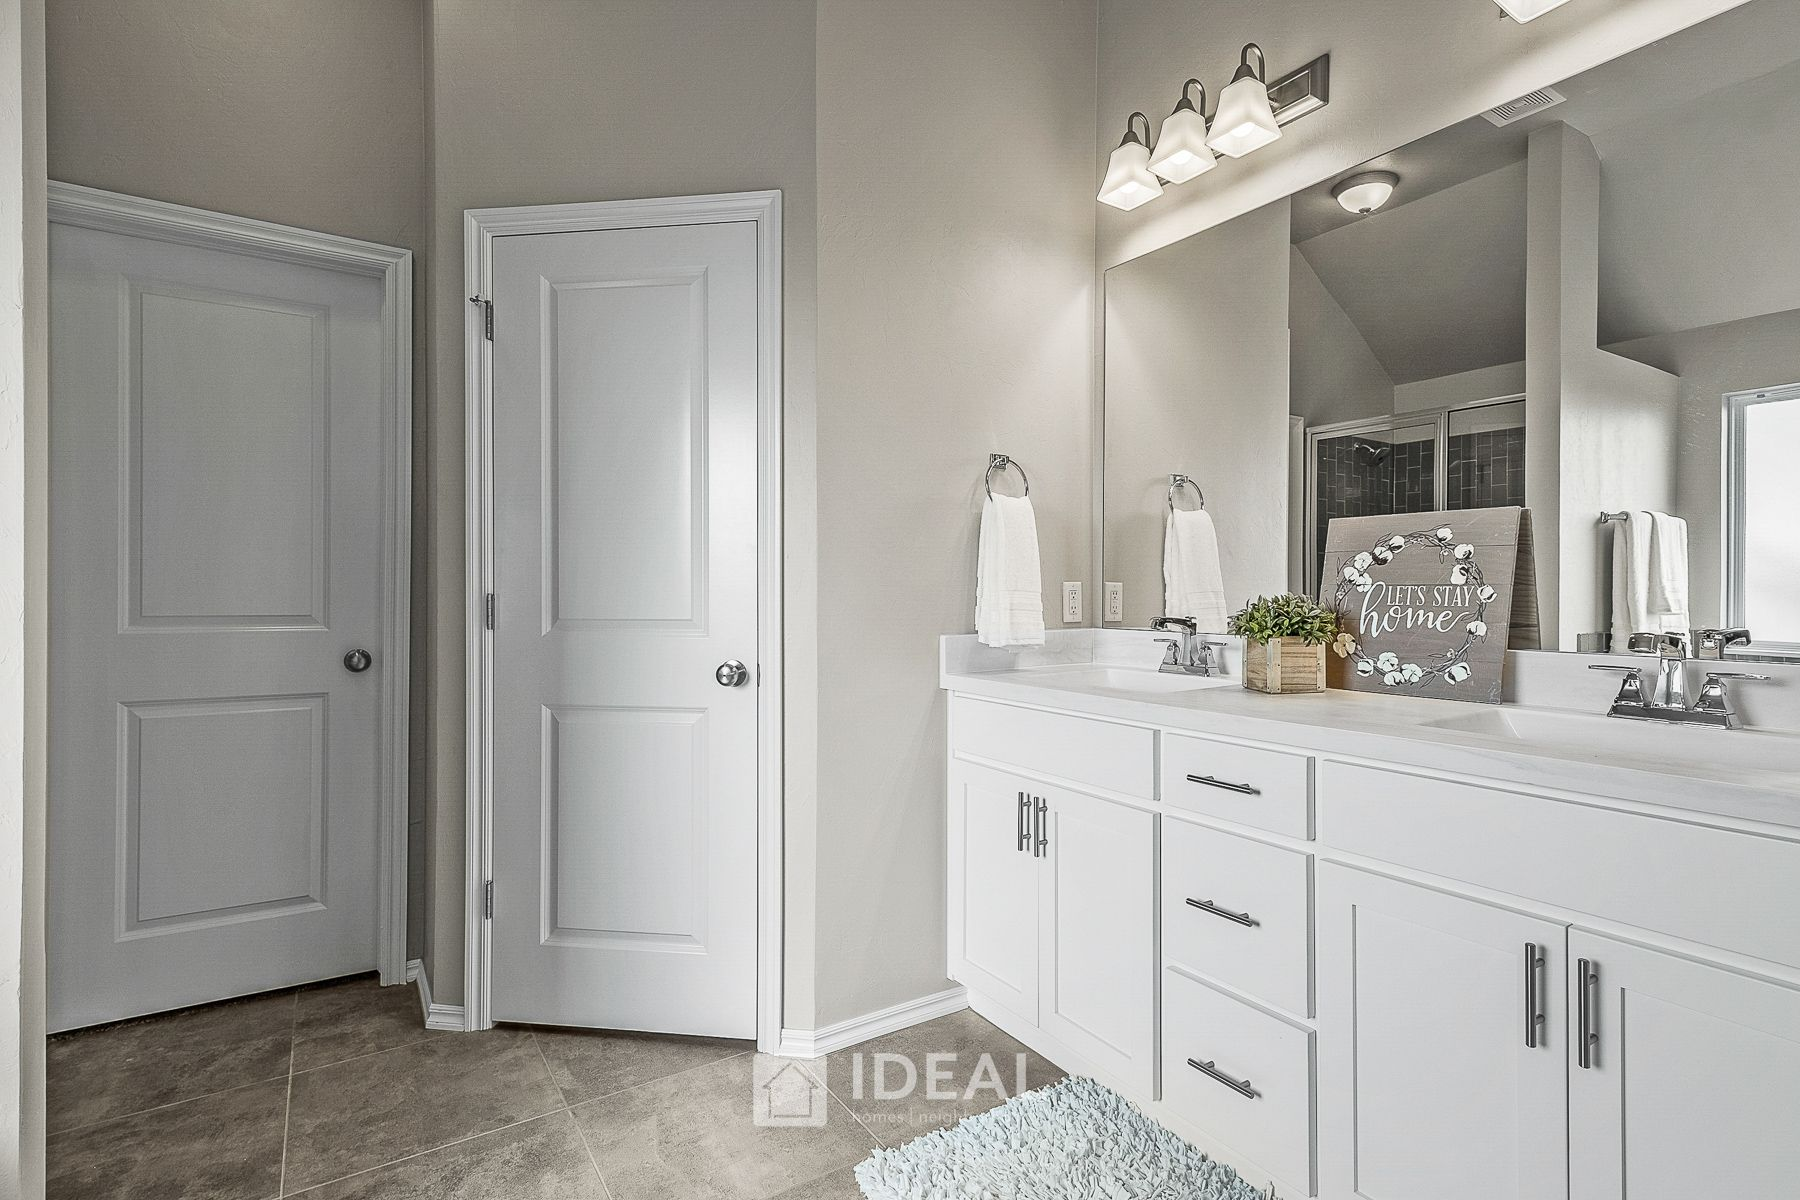 Bathroom featured in the Jacobson Modern By Ideal Homes in Oklahoma City, OK